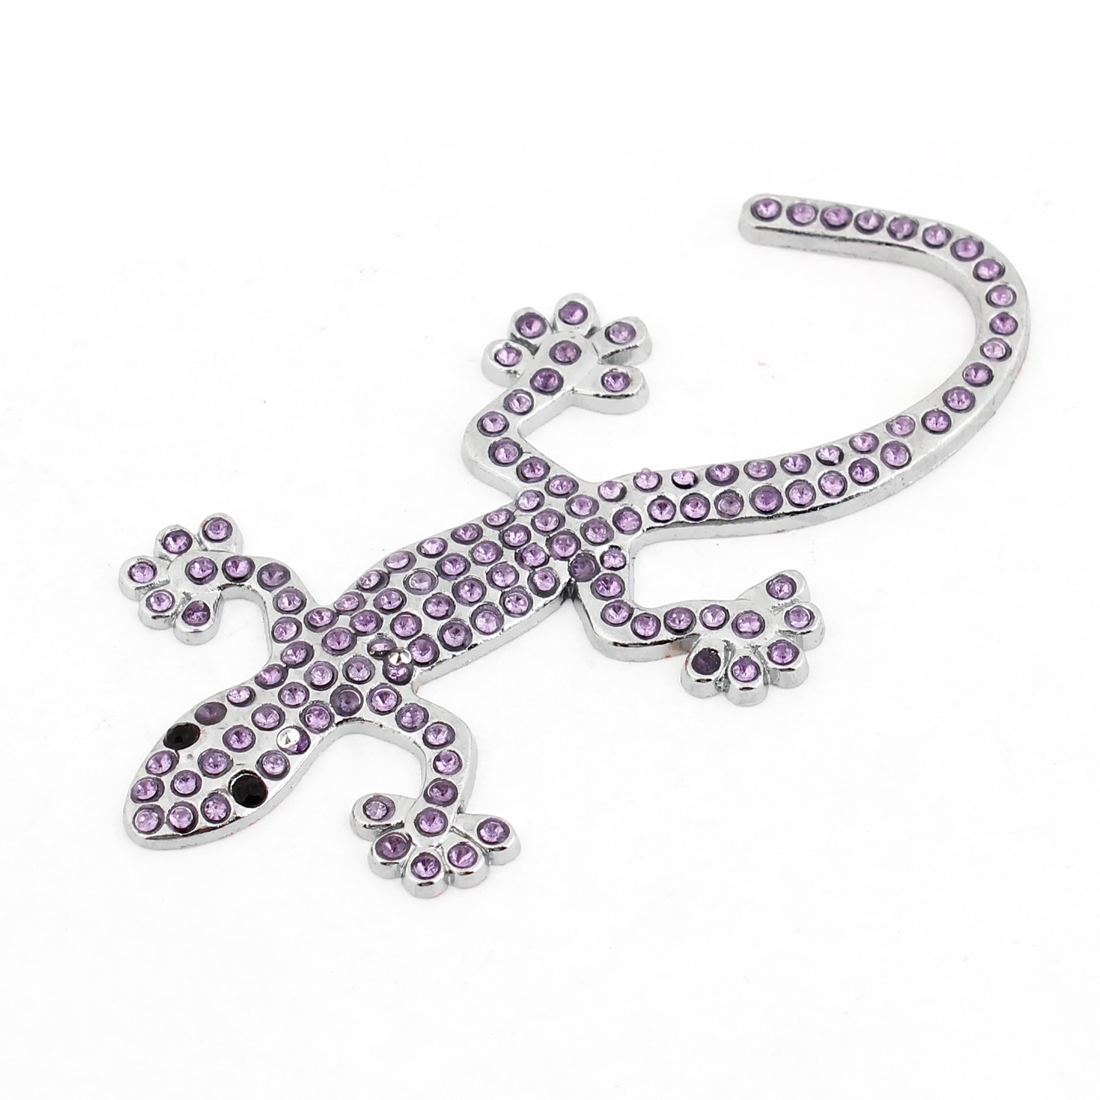 Purple Faux Rhinestone Decor 3D Gecko Design Sticker Silver Tone for Car